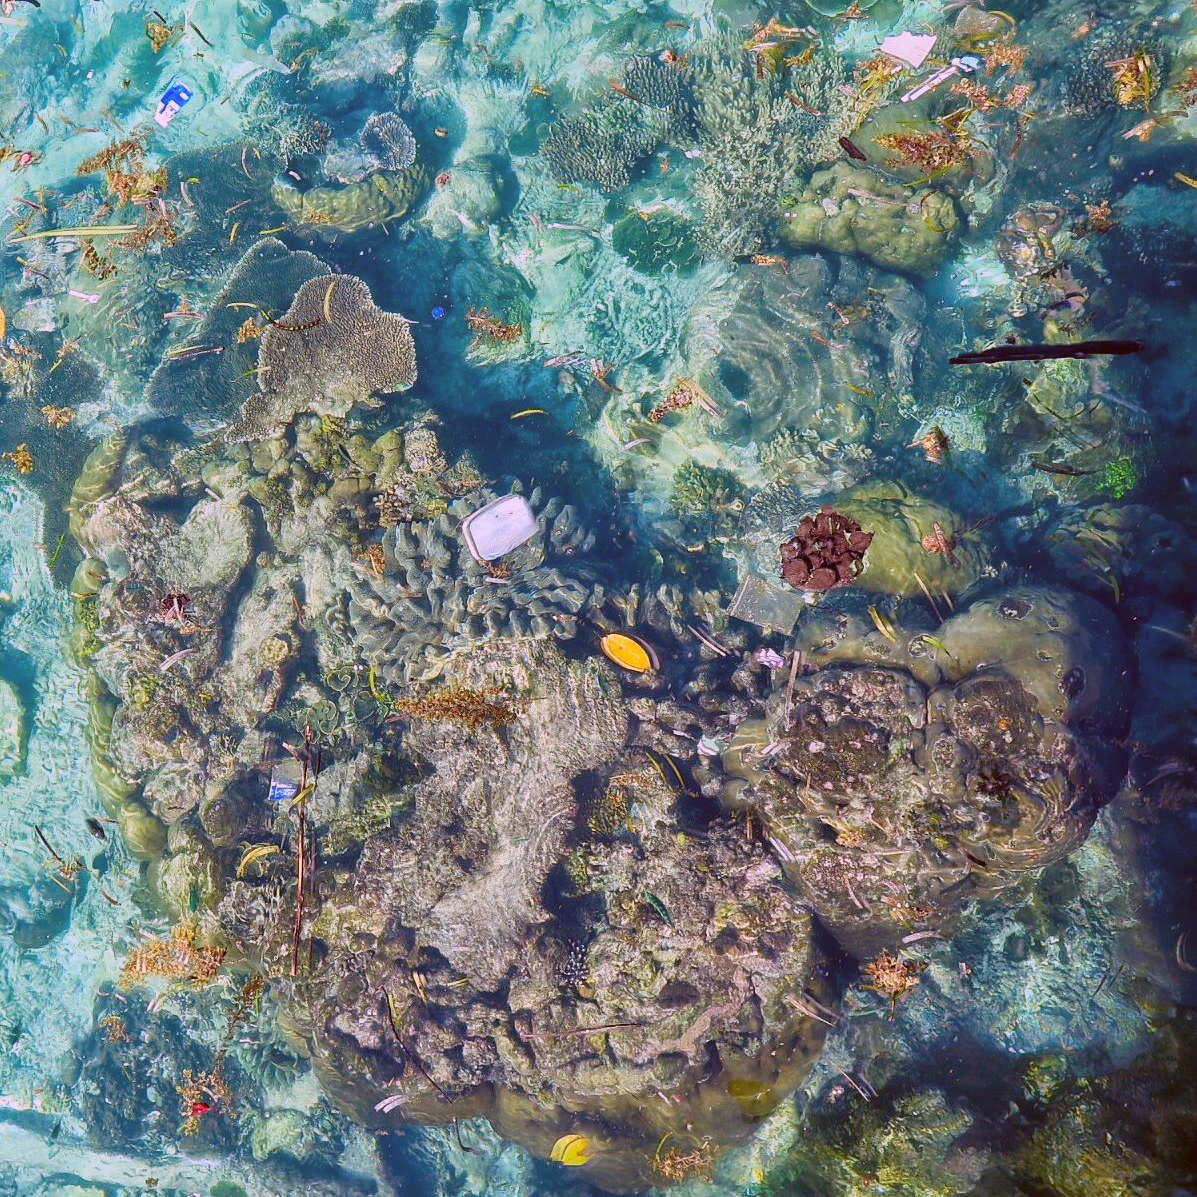 A survey of 150 reefs found plastic was a common pollutan